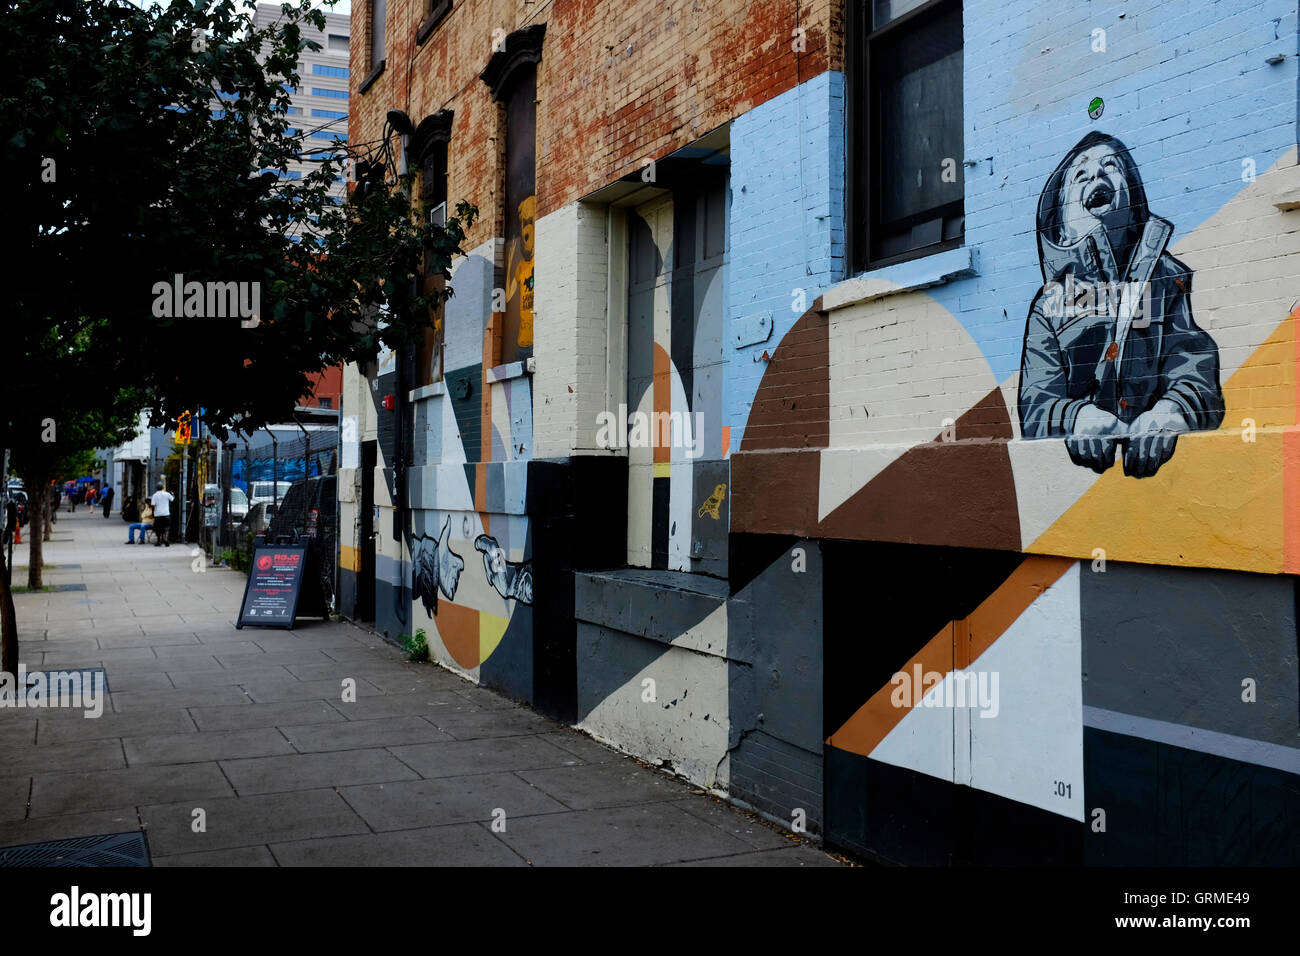 Mural of a child laughing along Christopher Columbus Drive in Historic Downtown,Jersey City,New Jersey,USA - Stock Image